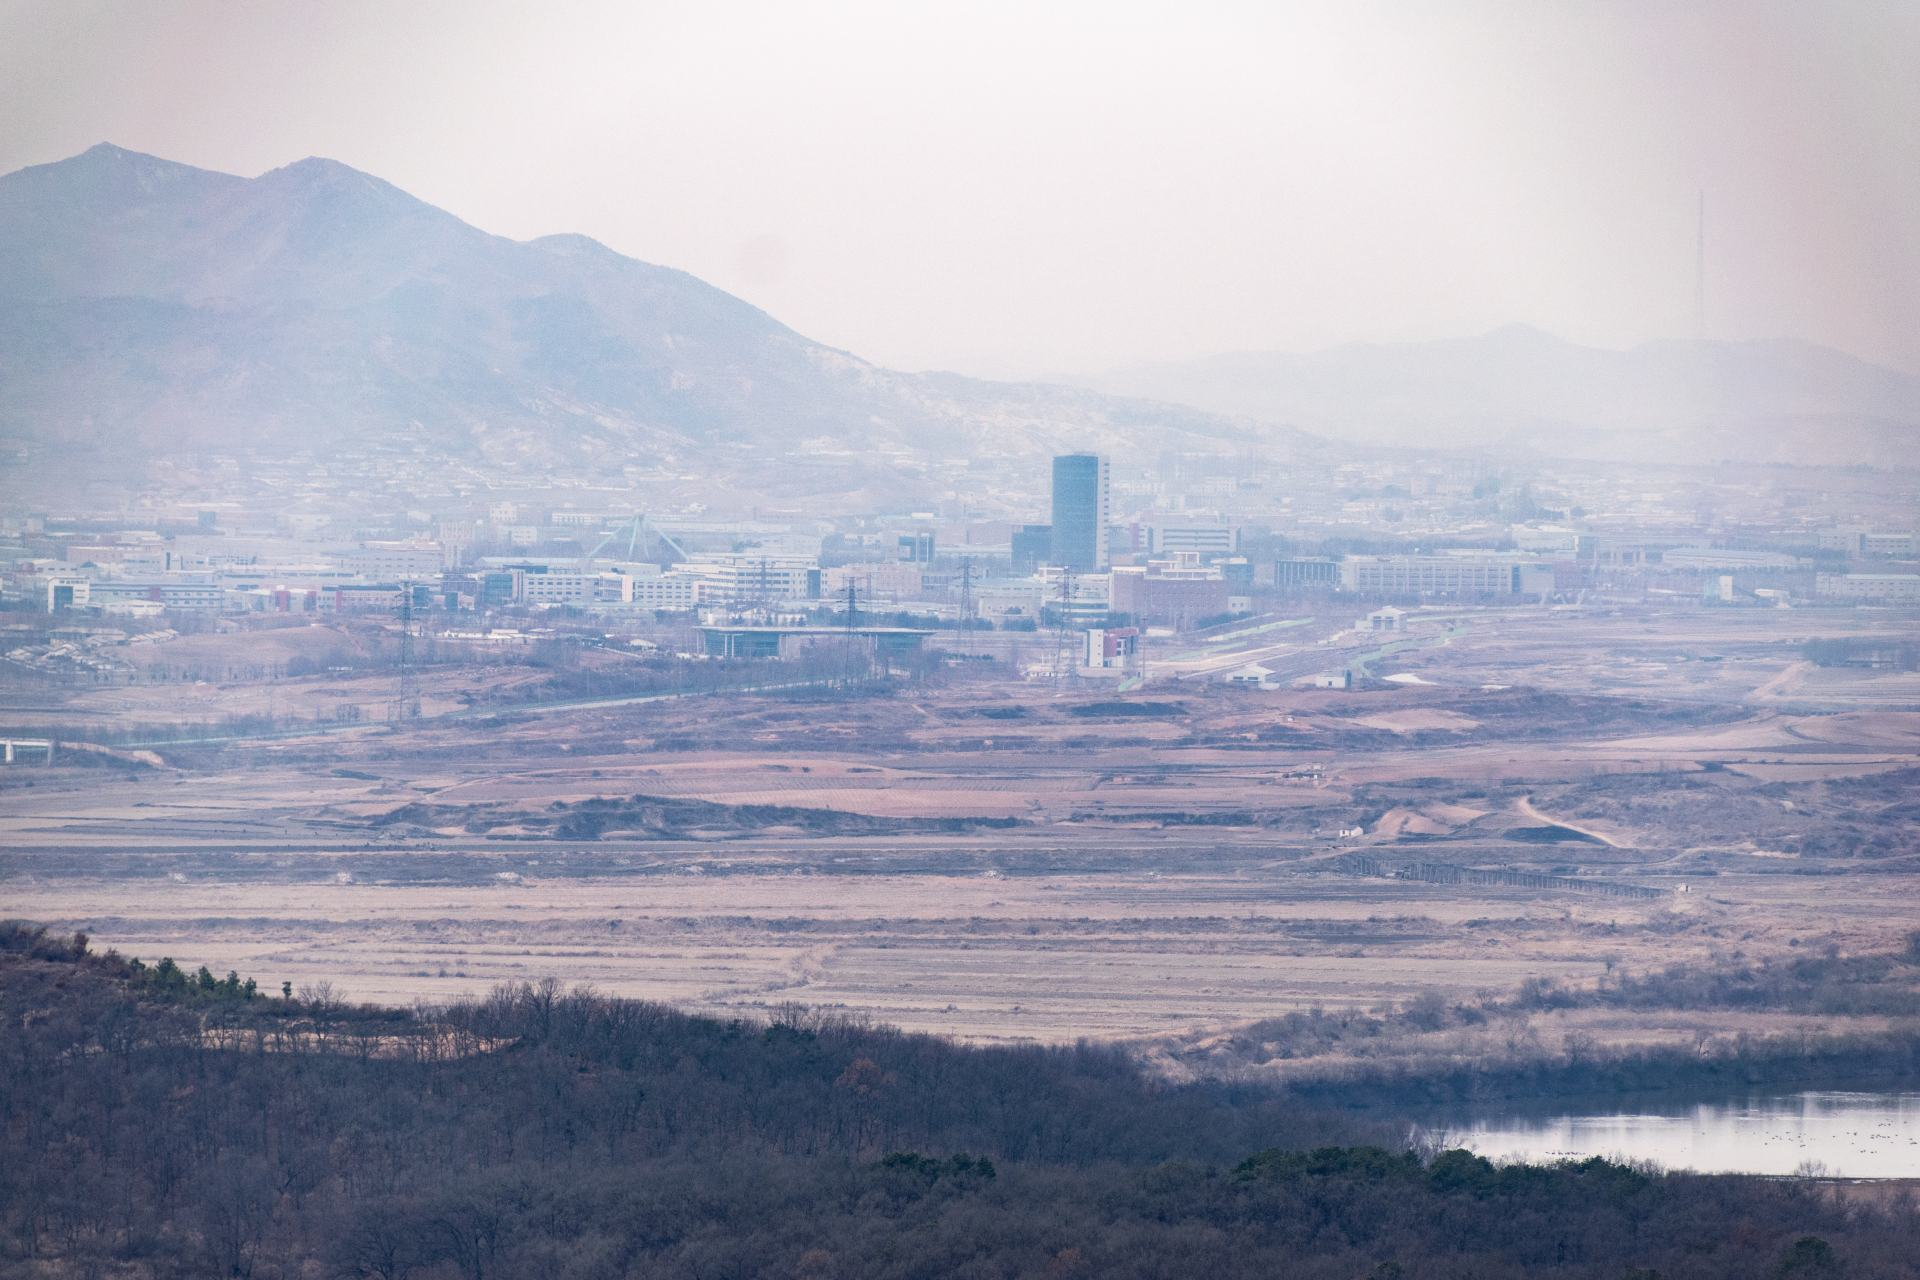 north korea from the dmz